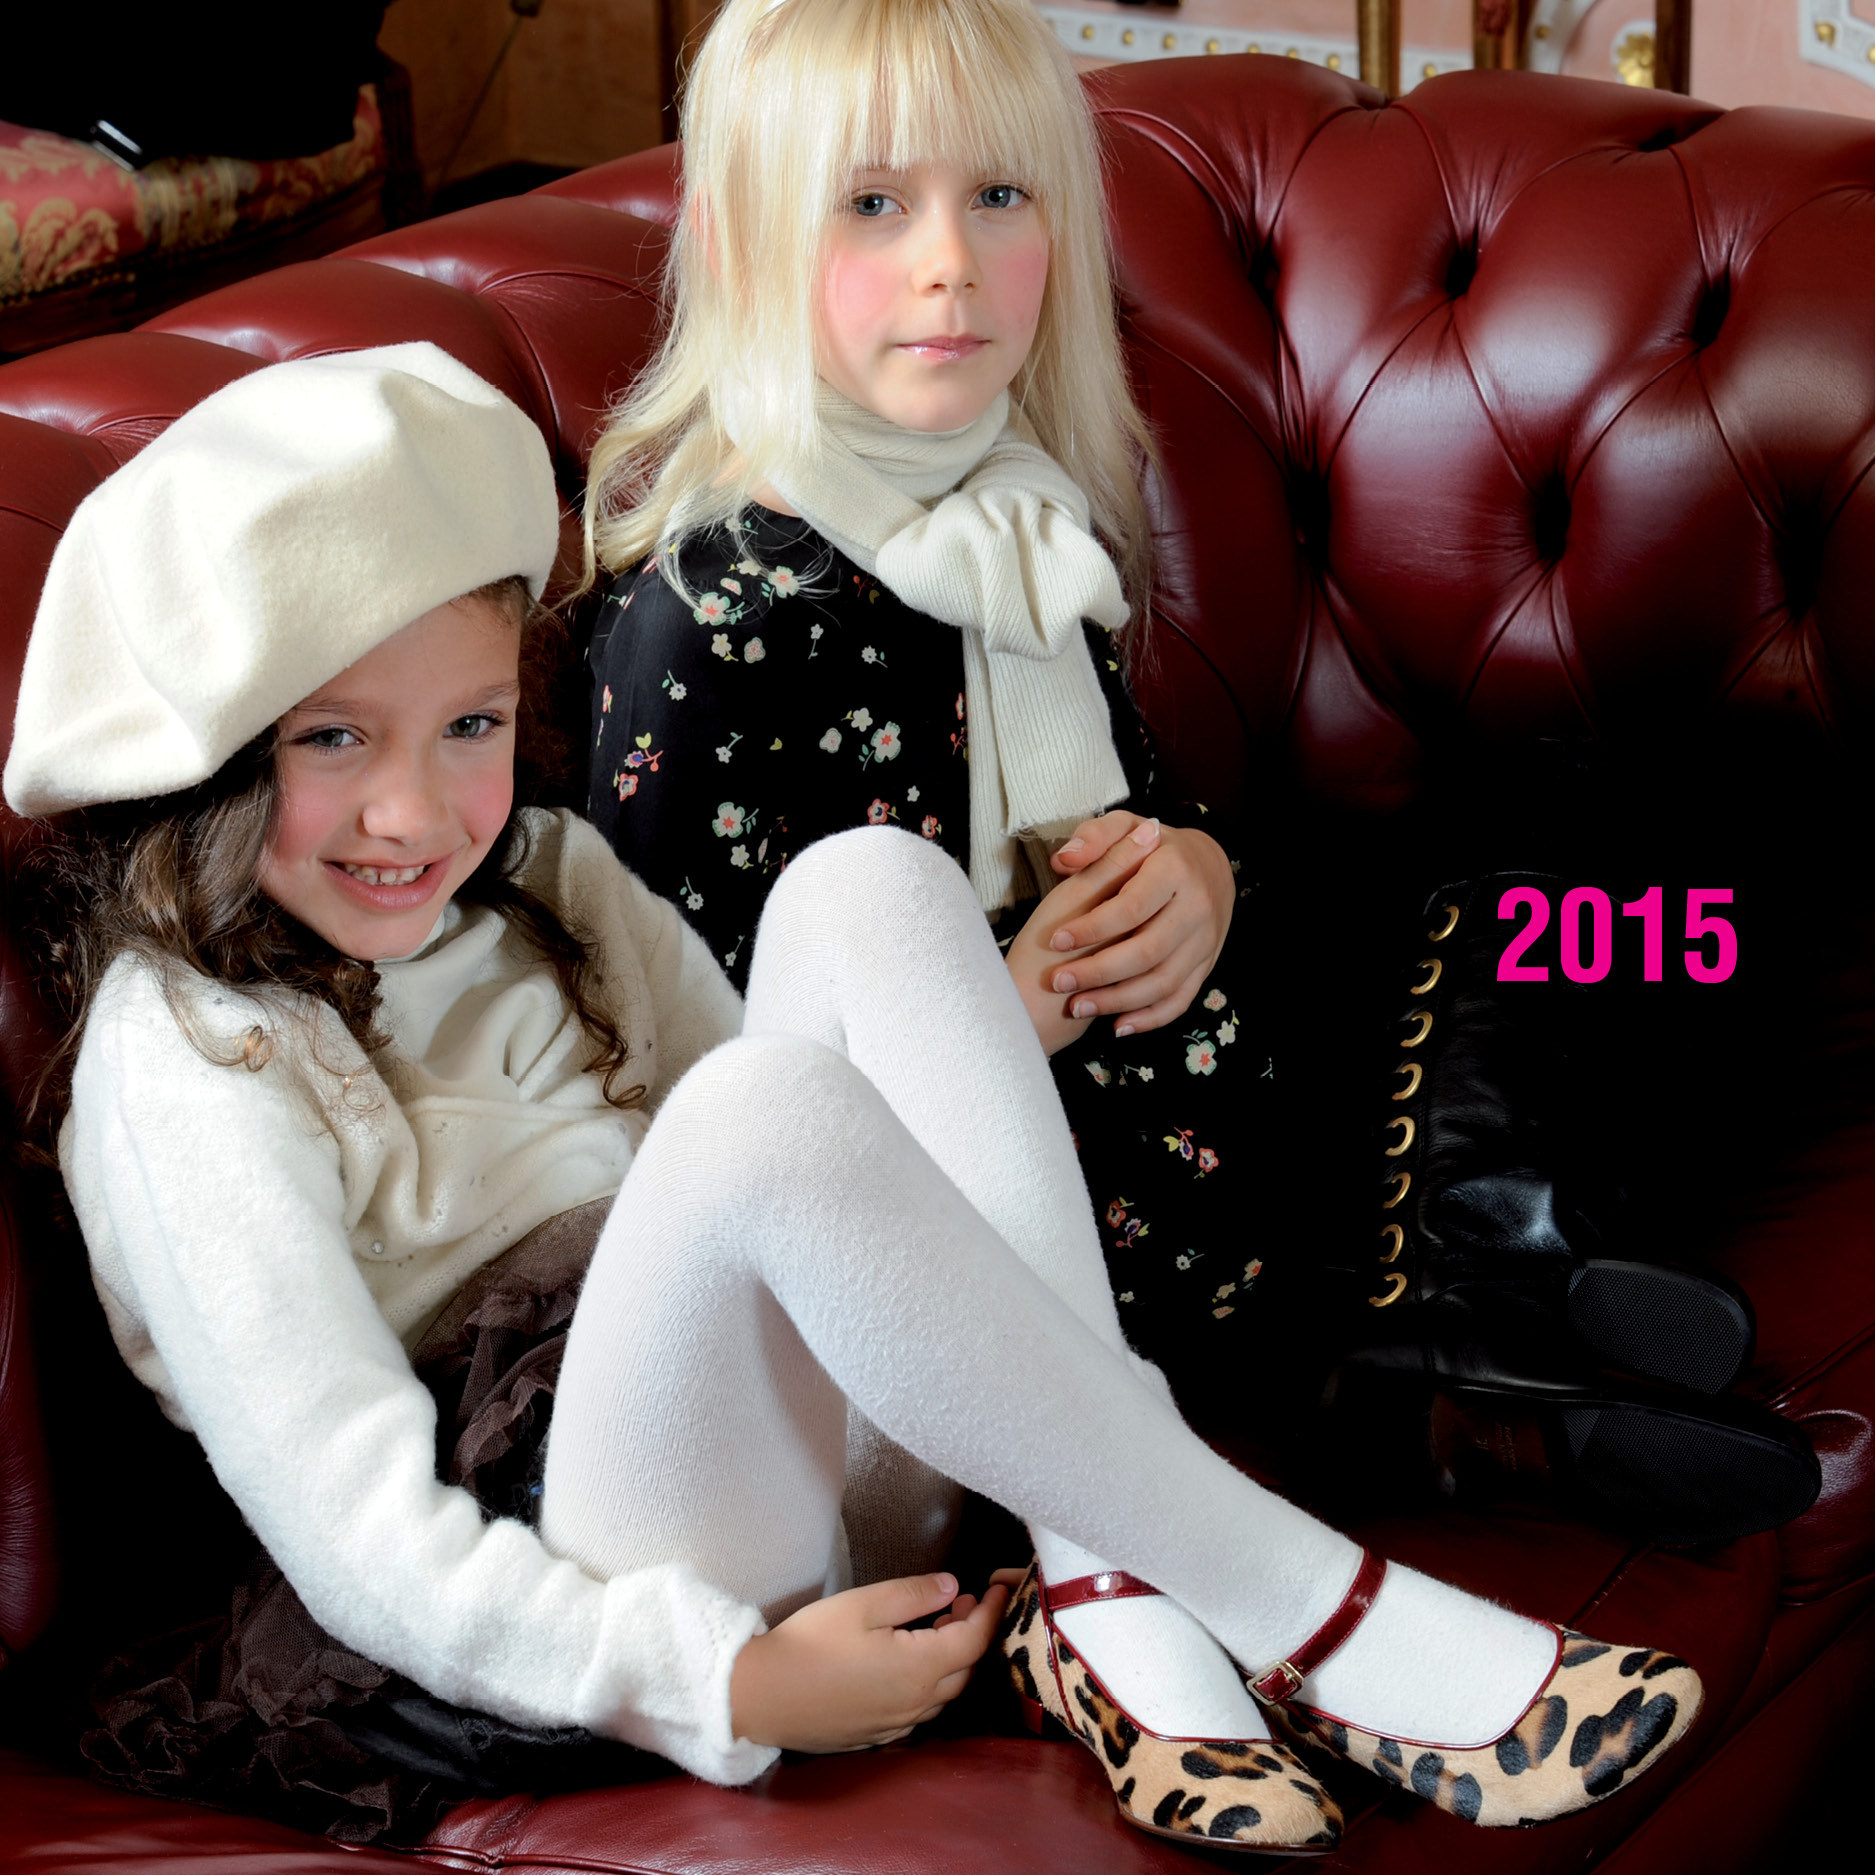 Missouri Children Shoes History 2015